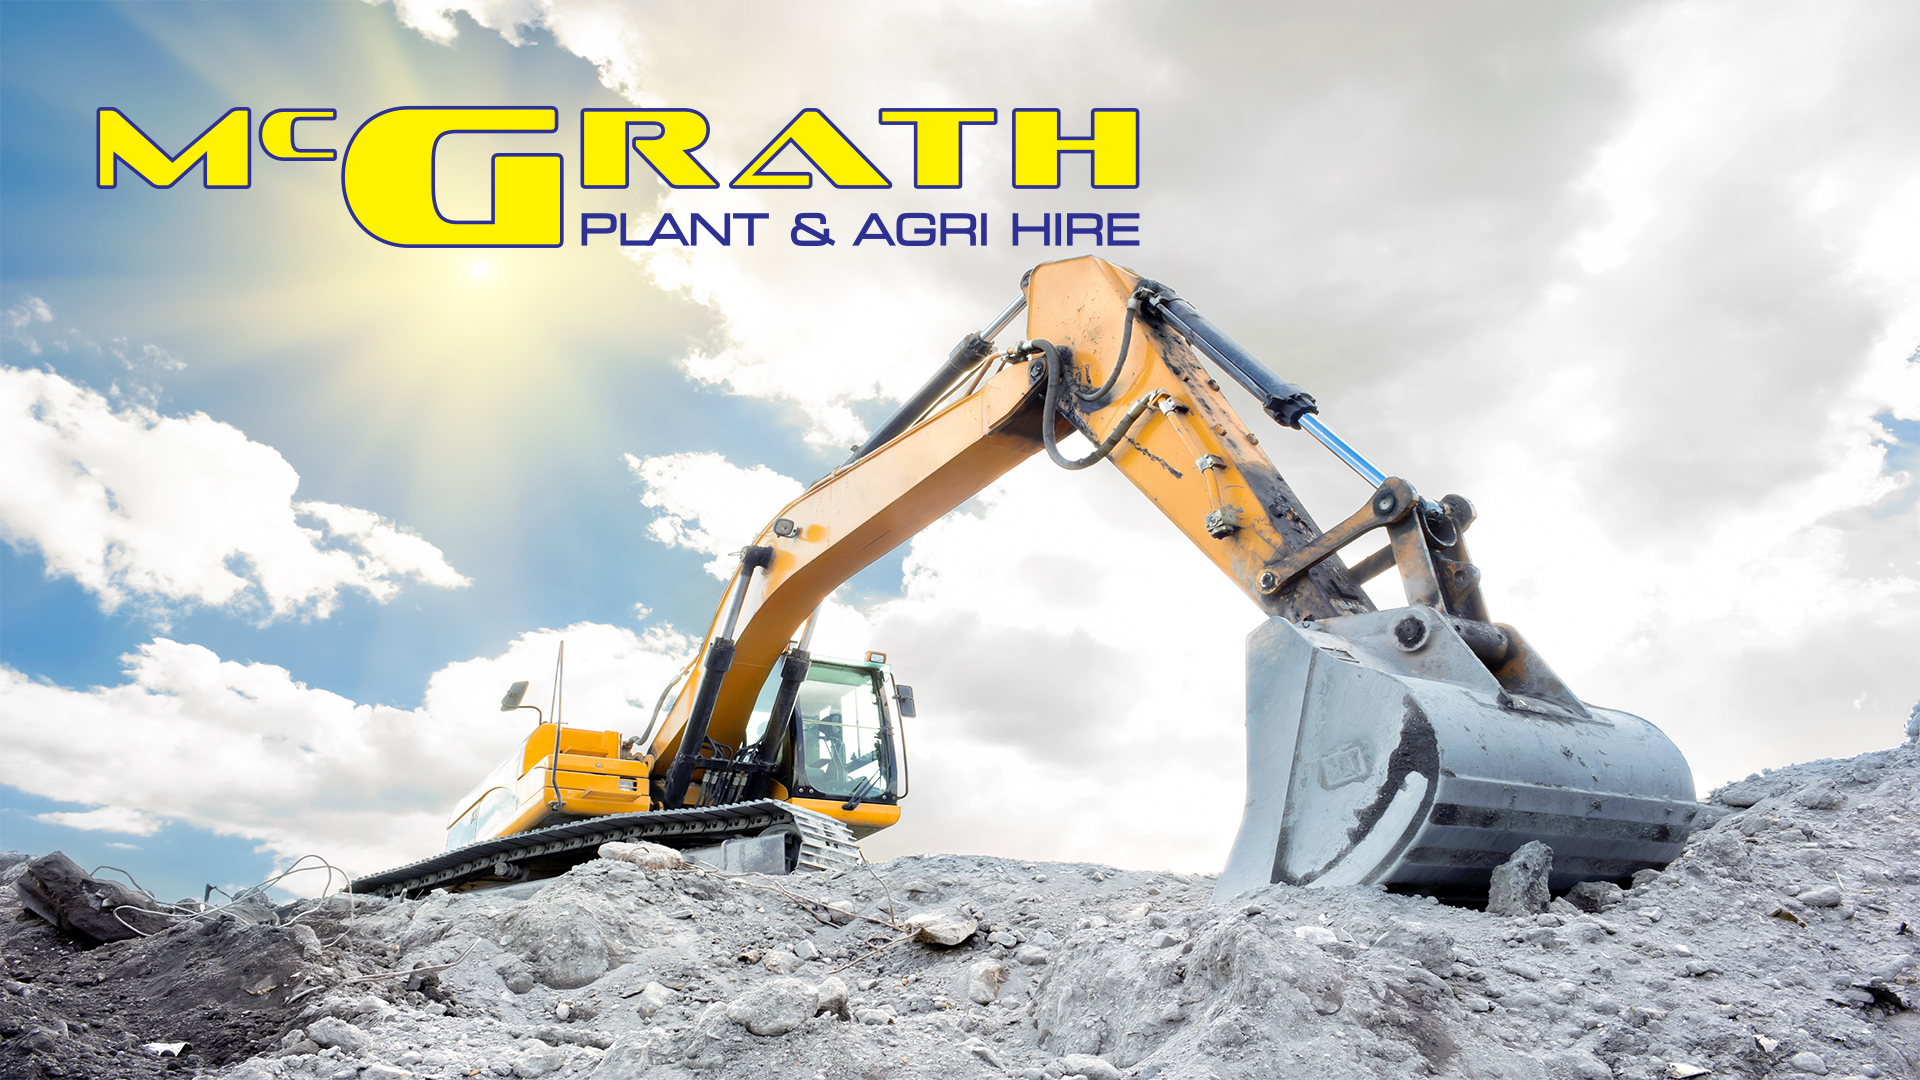 Portfolio: McGrath Plant & Agri Hire